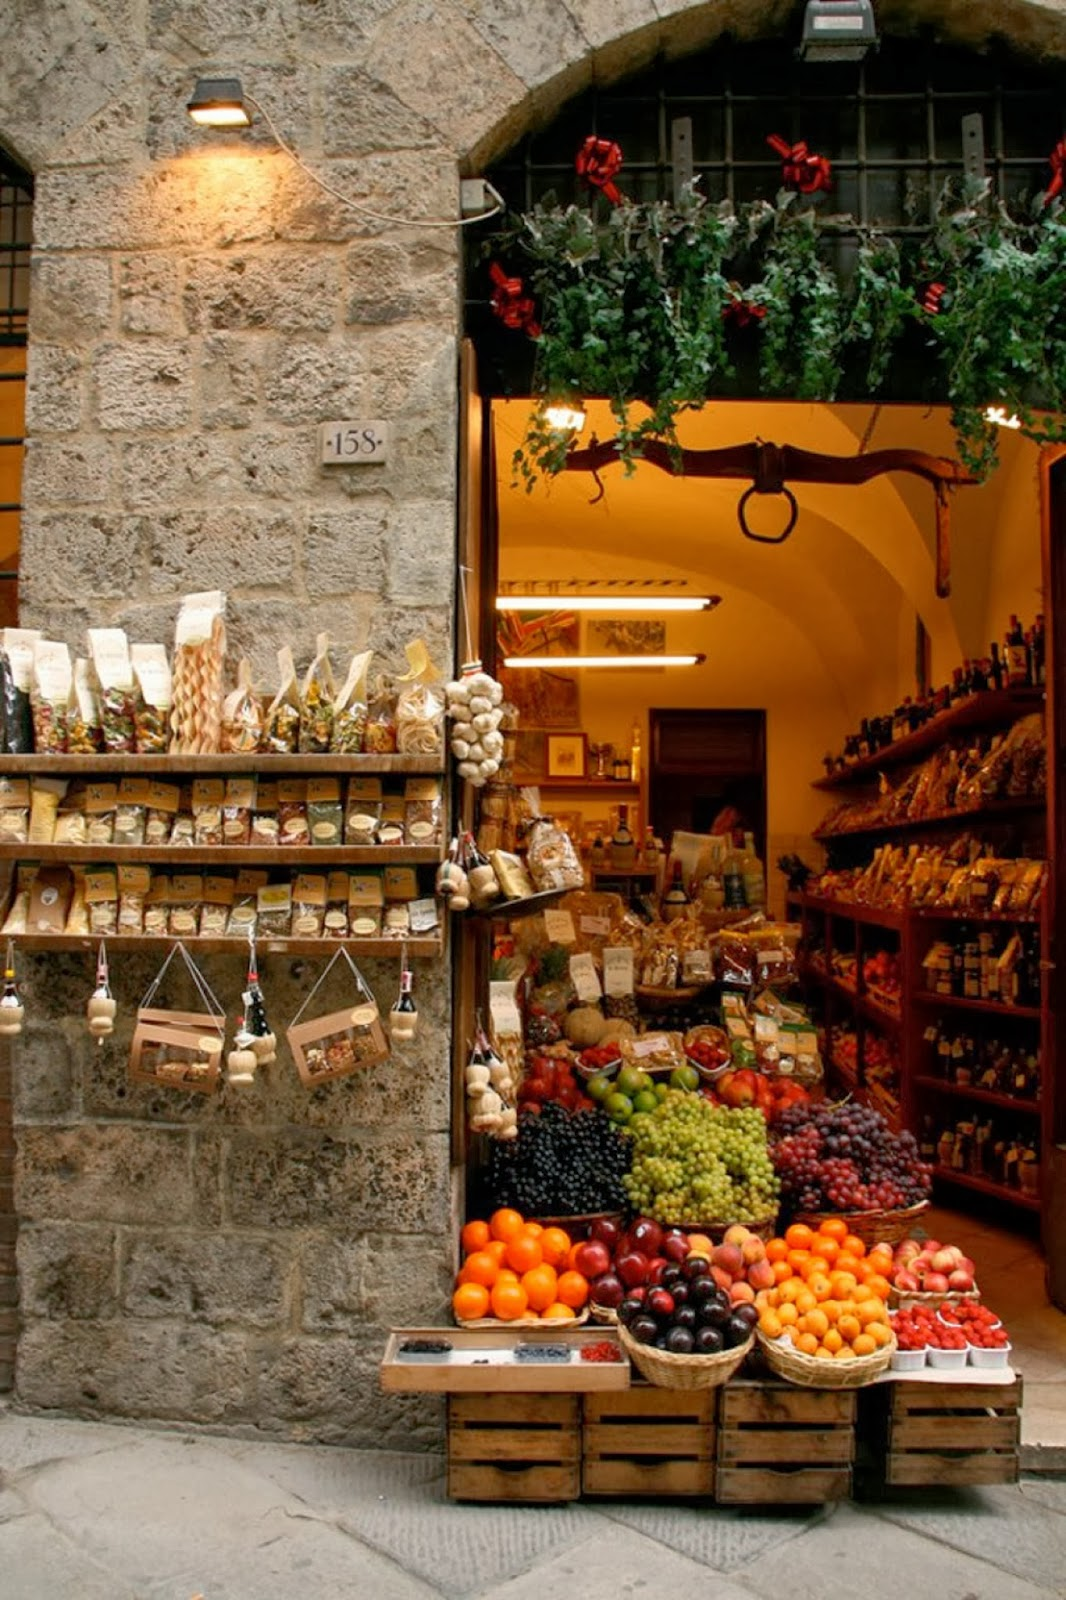 A little gourmet shop in Italy